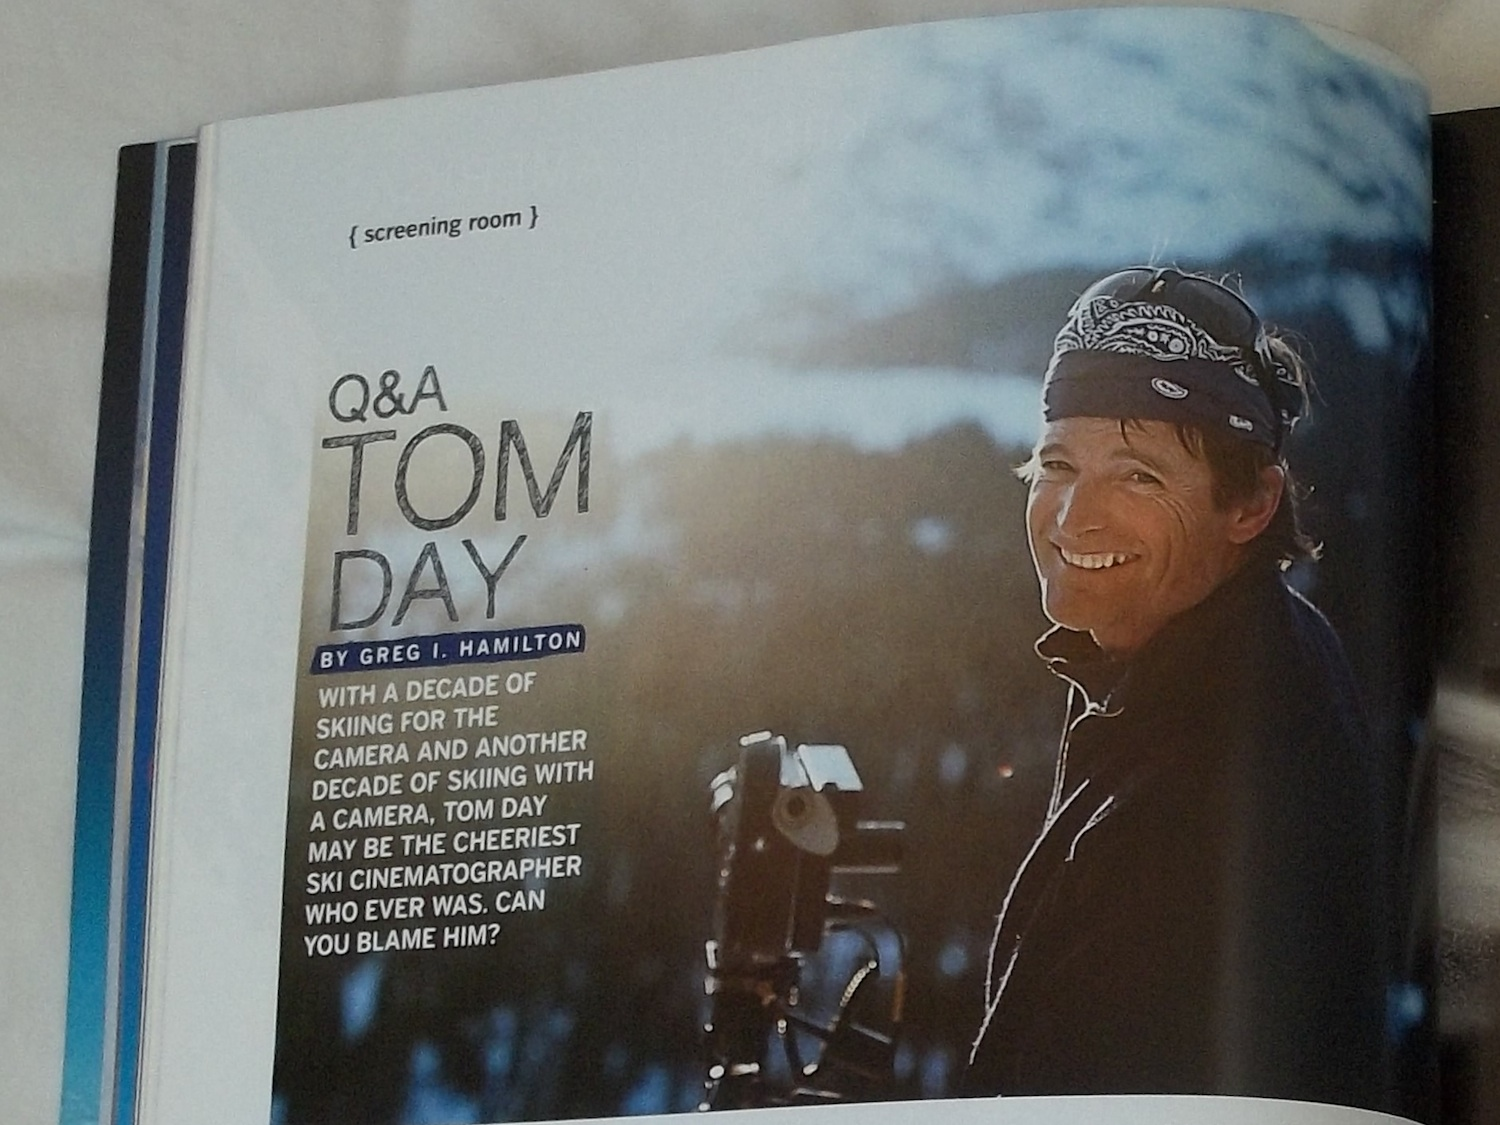 Greg interviewed Tom day for the 62nd annual Warren Miller film tour